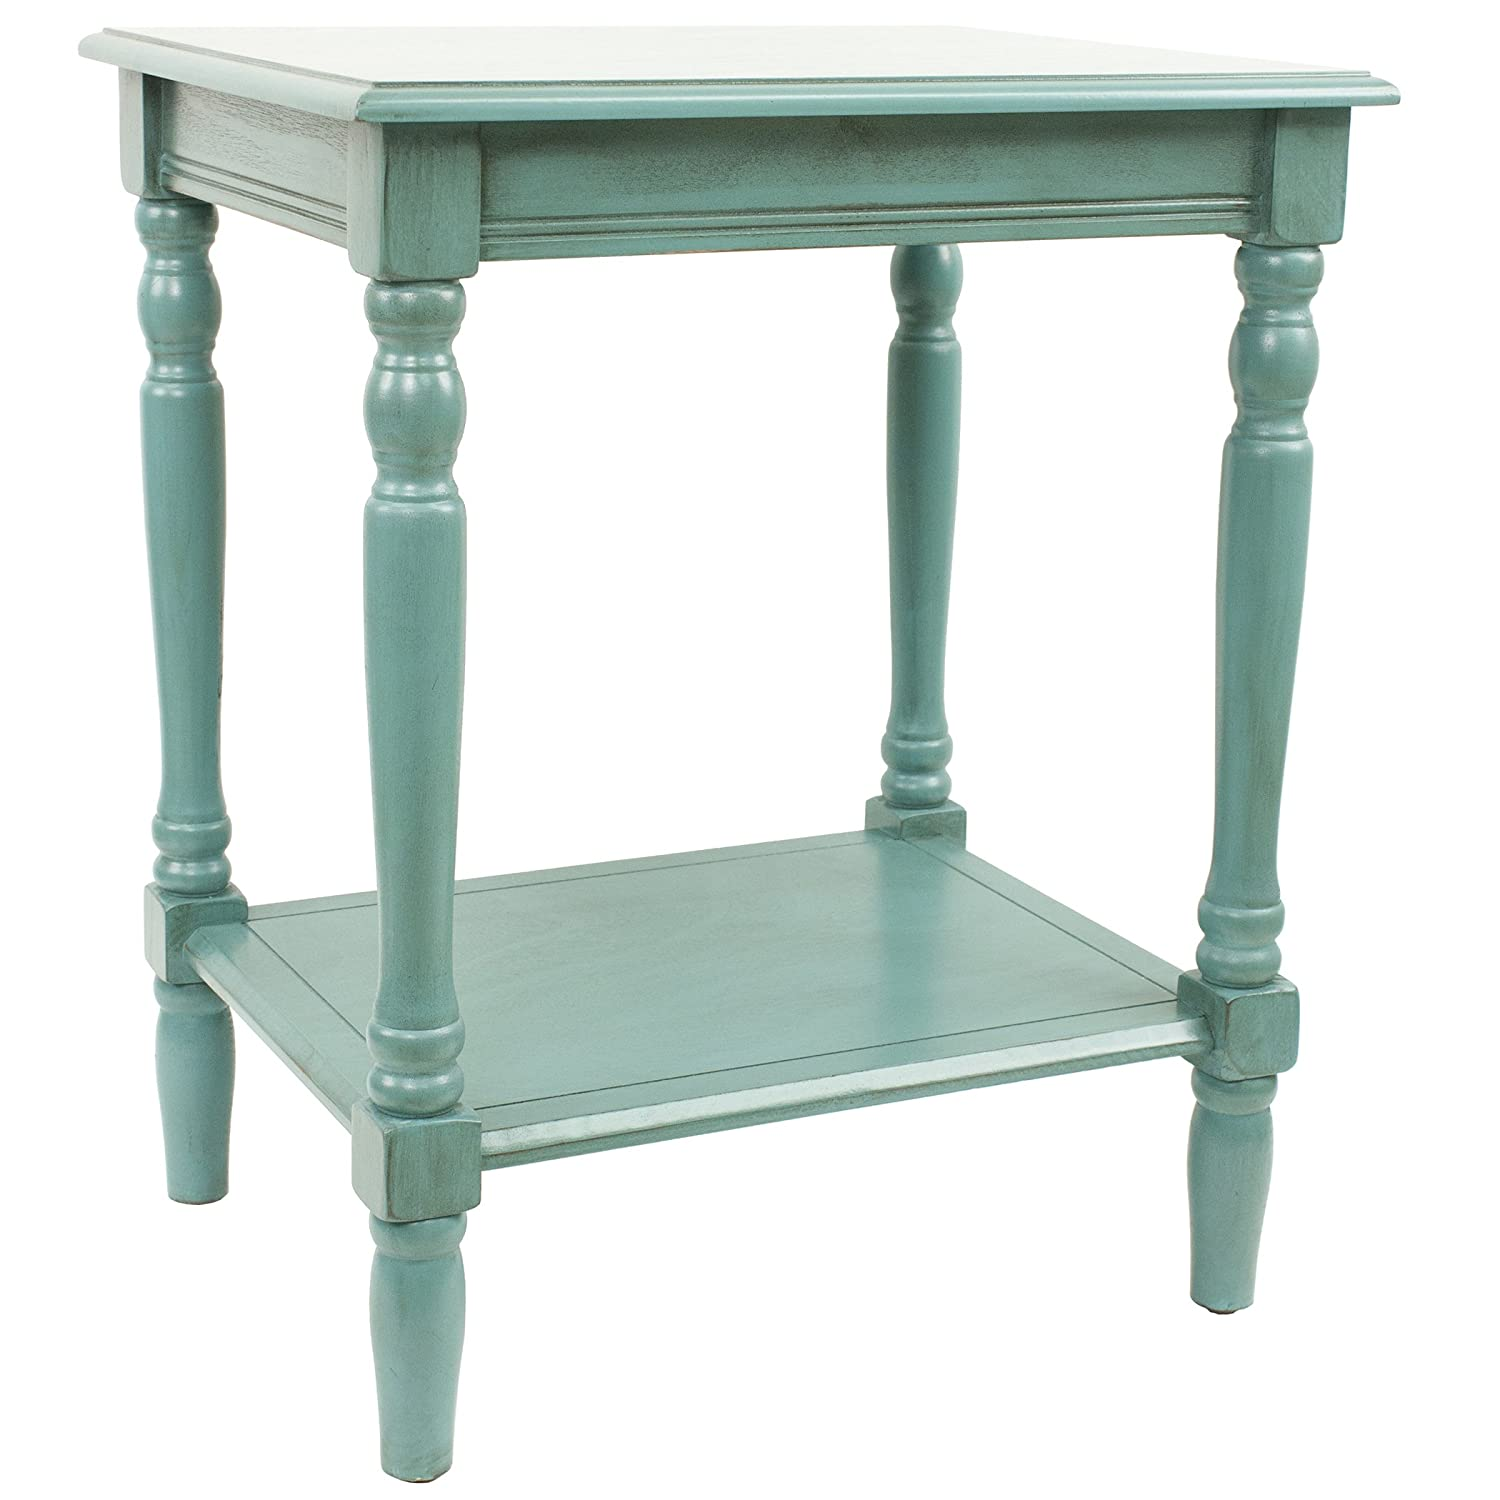 Amazon.com: Décor Therapy Simplify End Table, Blue: Kitchen & Dining